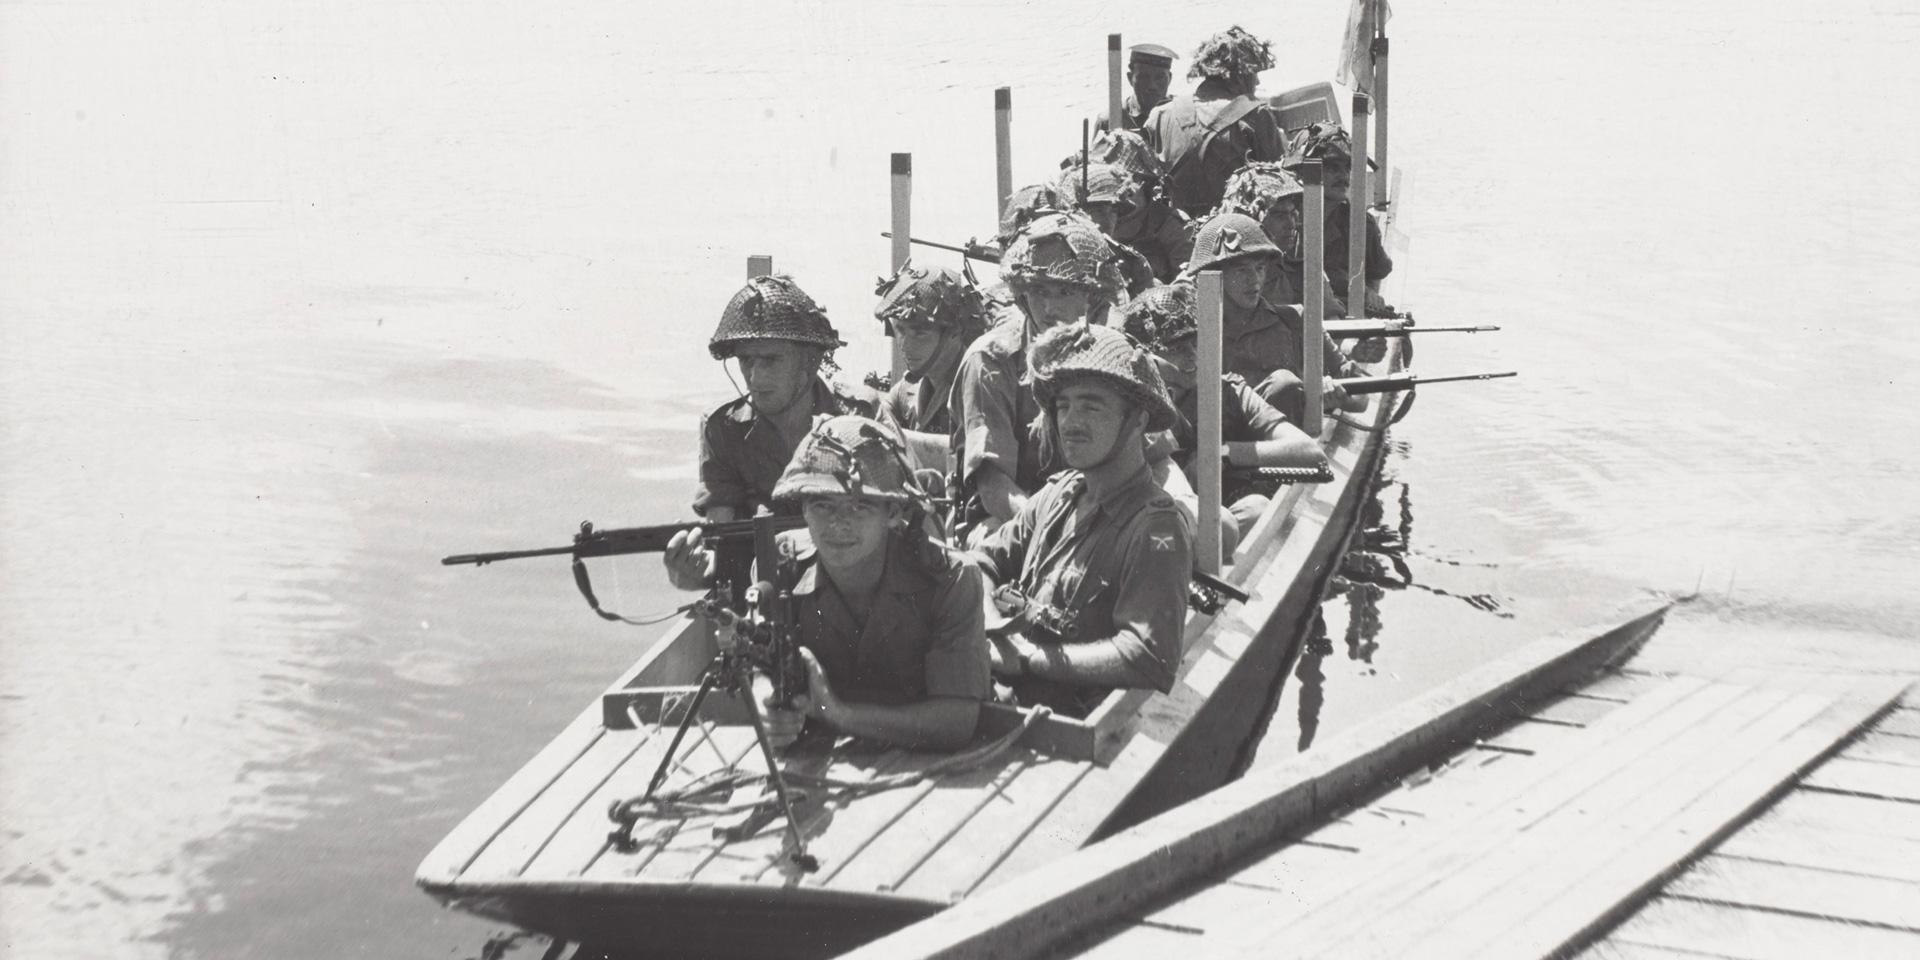 Members of 1st Battalion The Queen's Own Highlanders on river patrol in Brunei, 1962